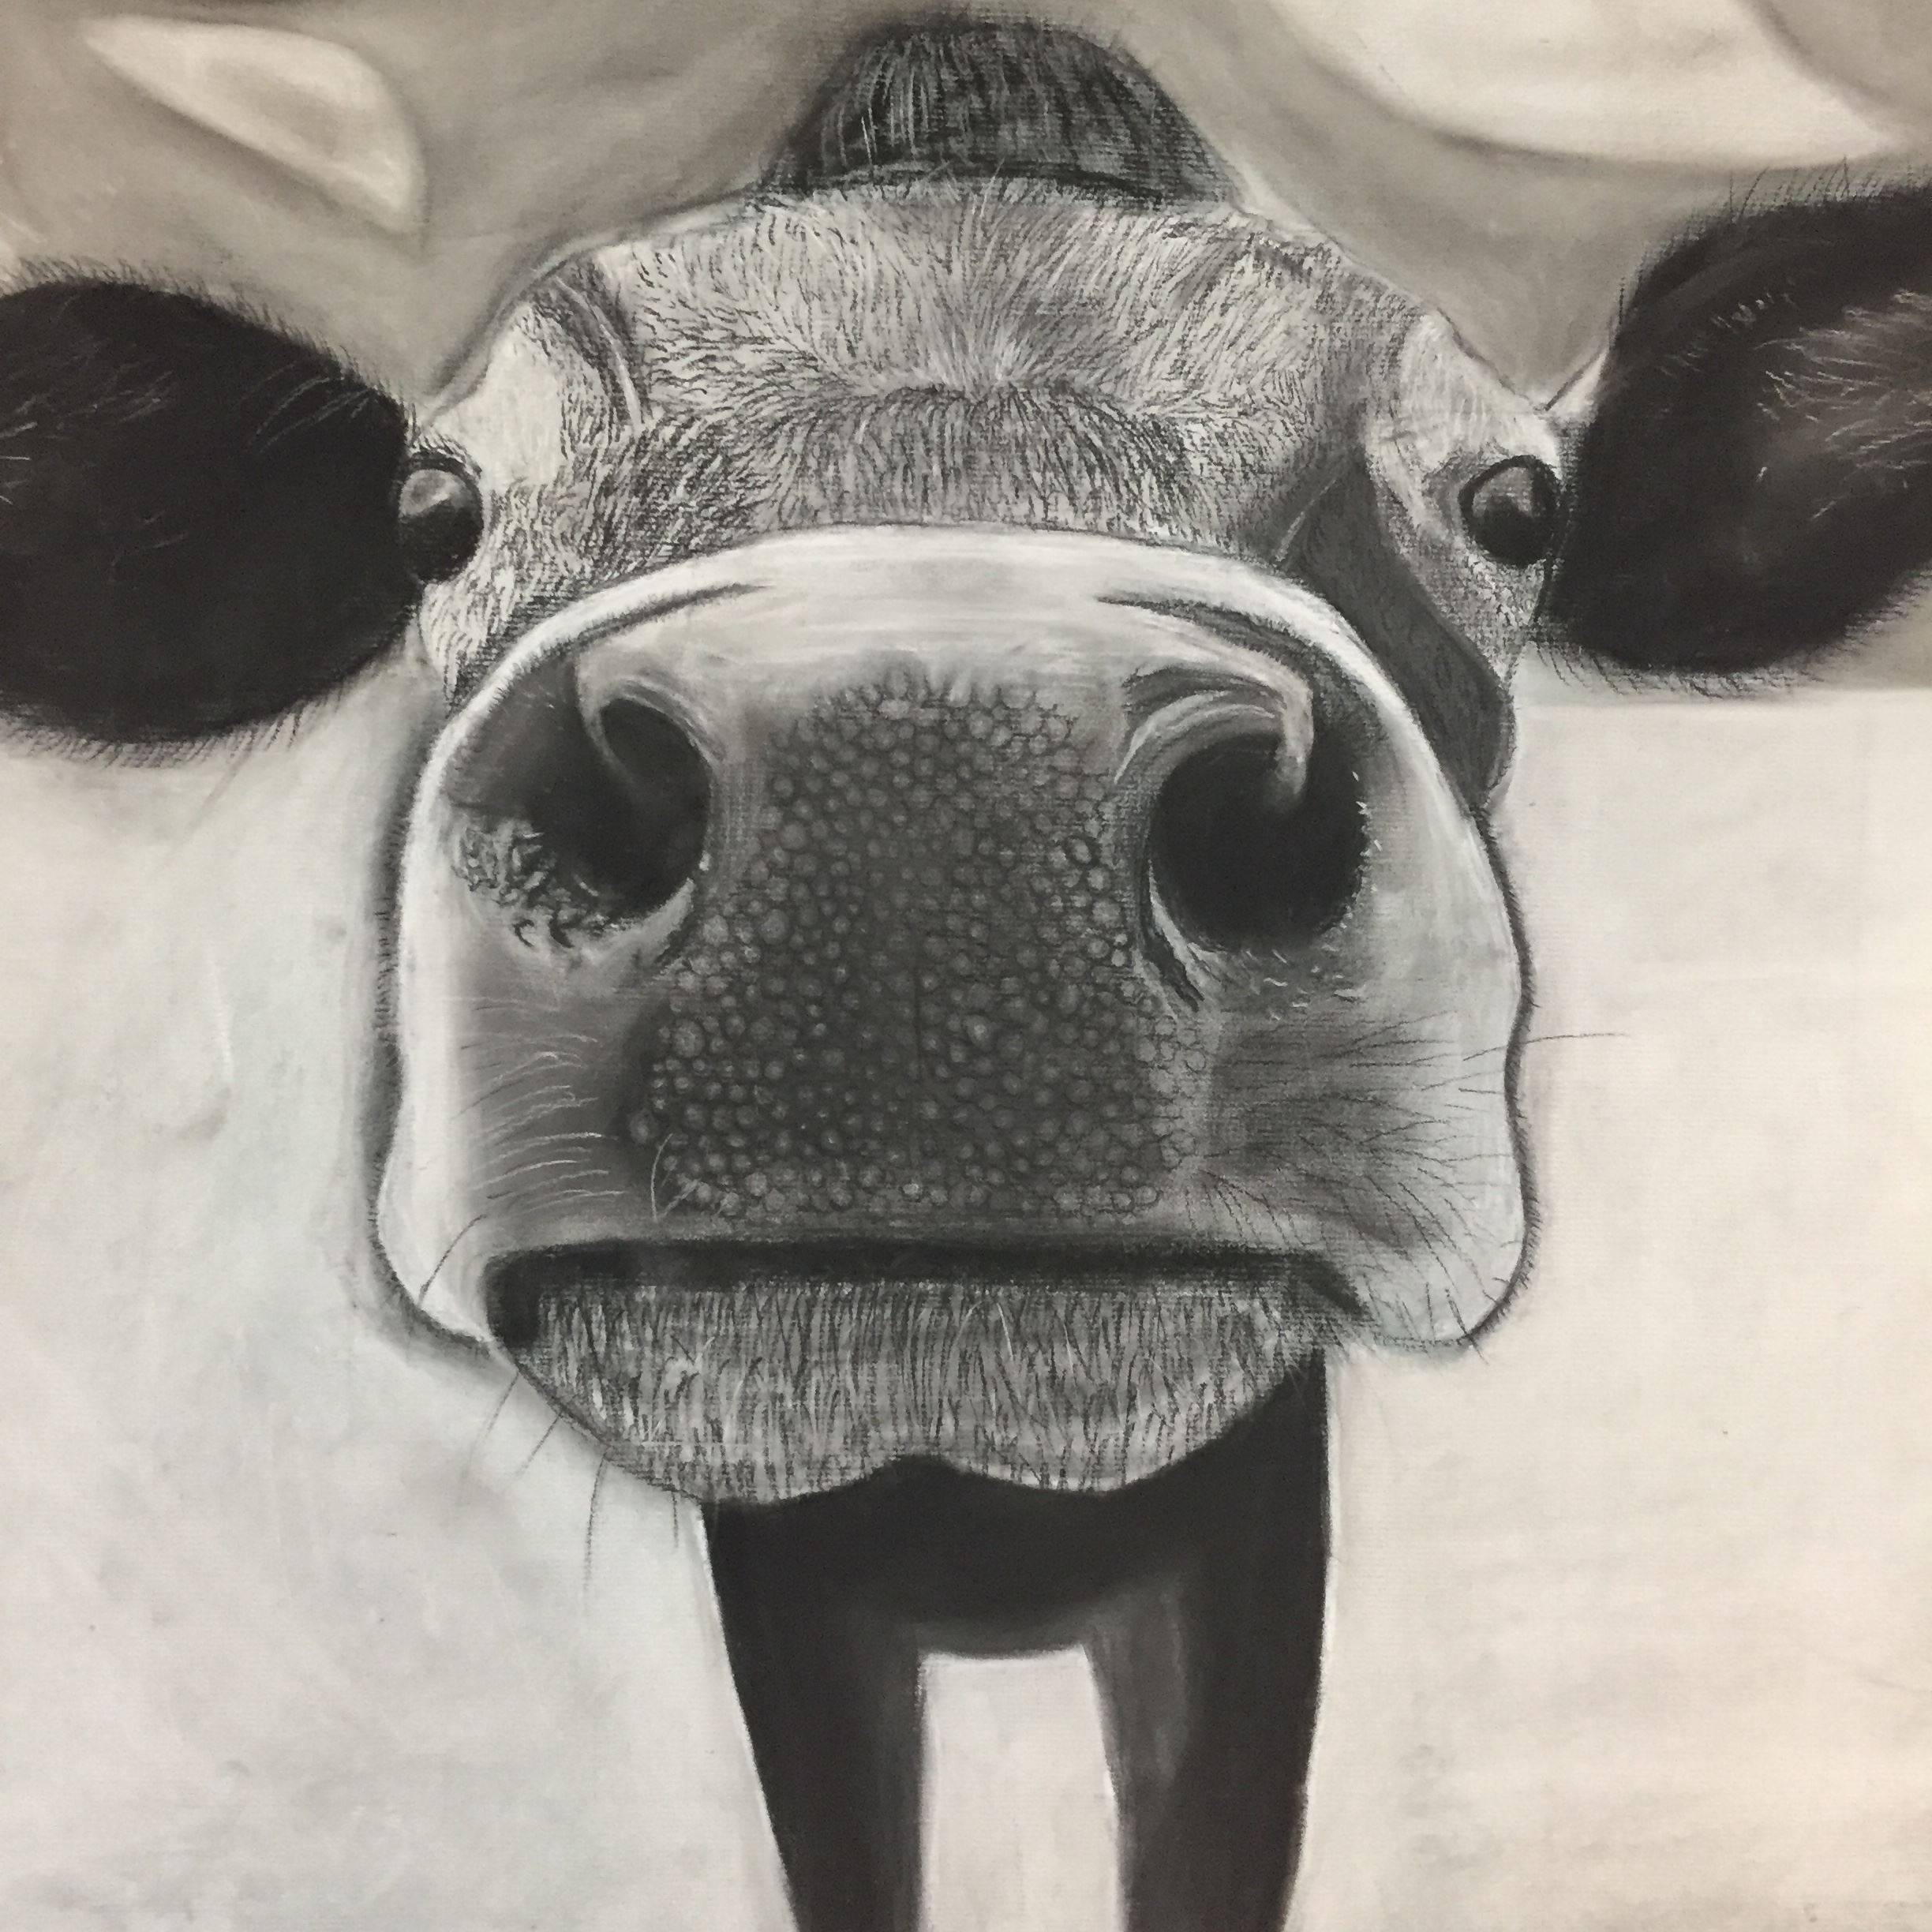 Black and white sketch of up-close cow face